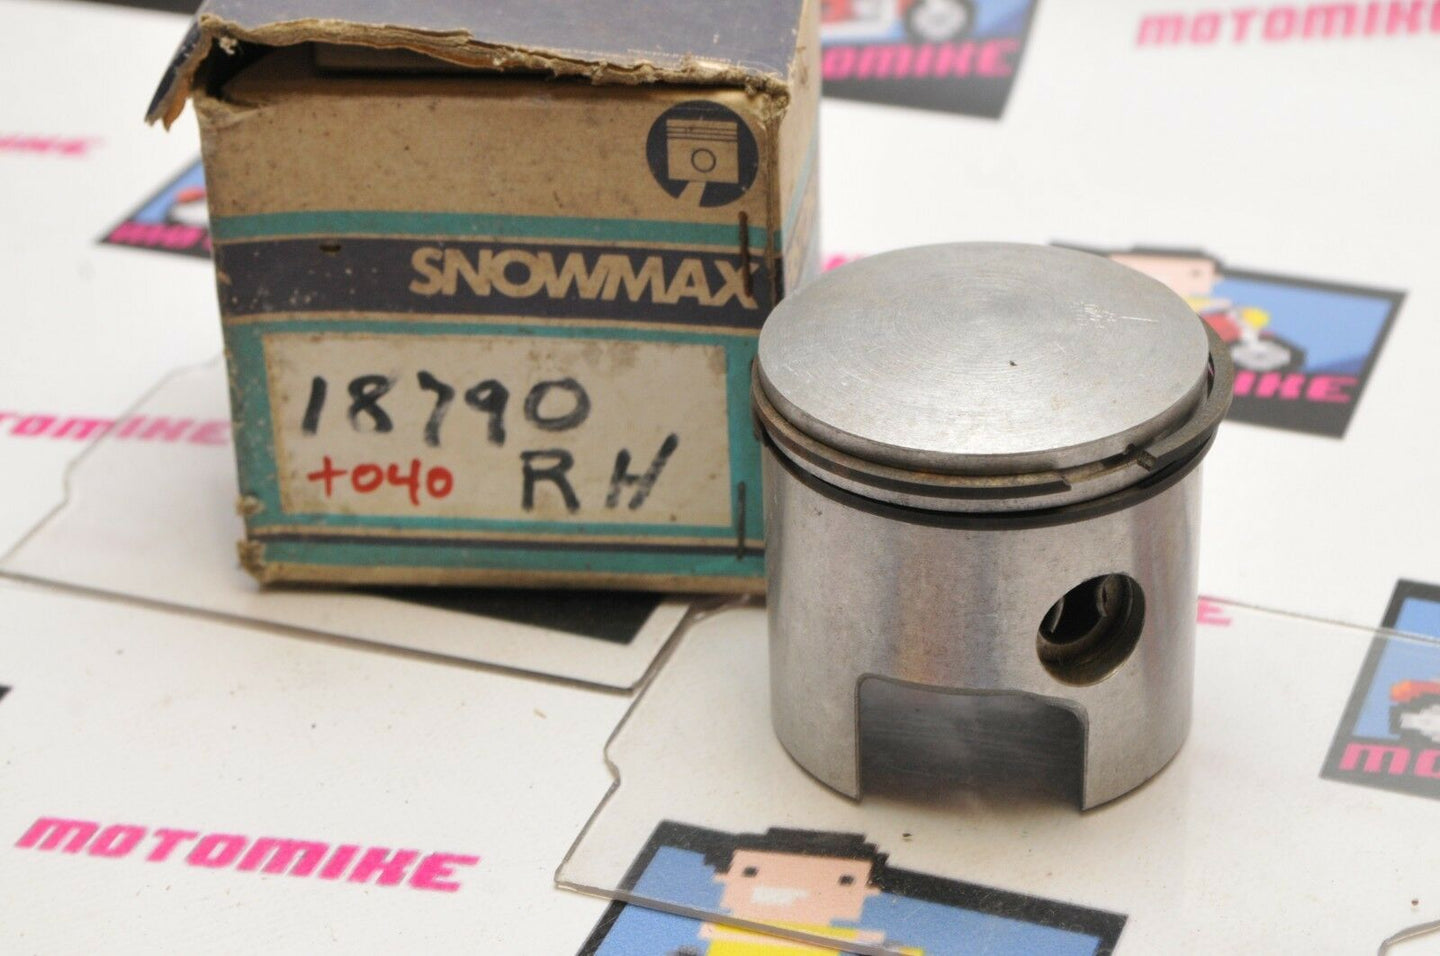 NOS New Old Stock SNOWMAX PISTON 18790 +40 ROTAX RH R RIGHT 64.5mm +.040 OVER